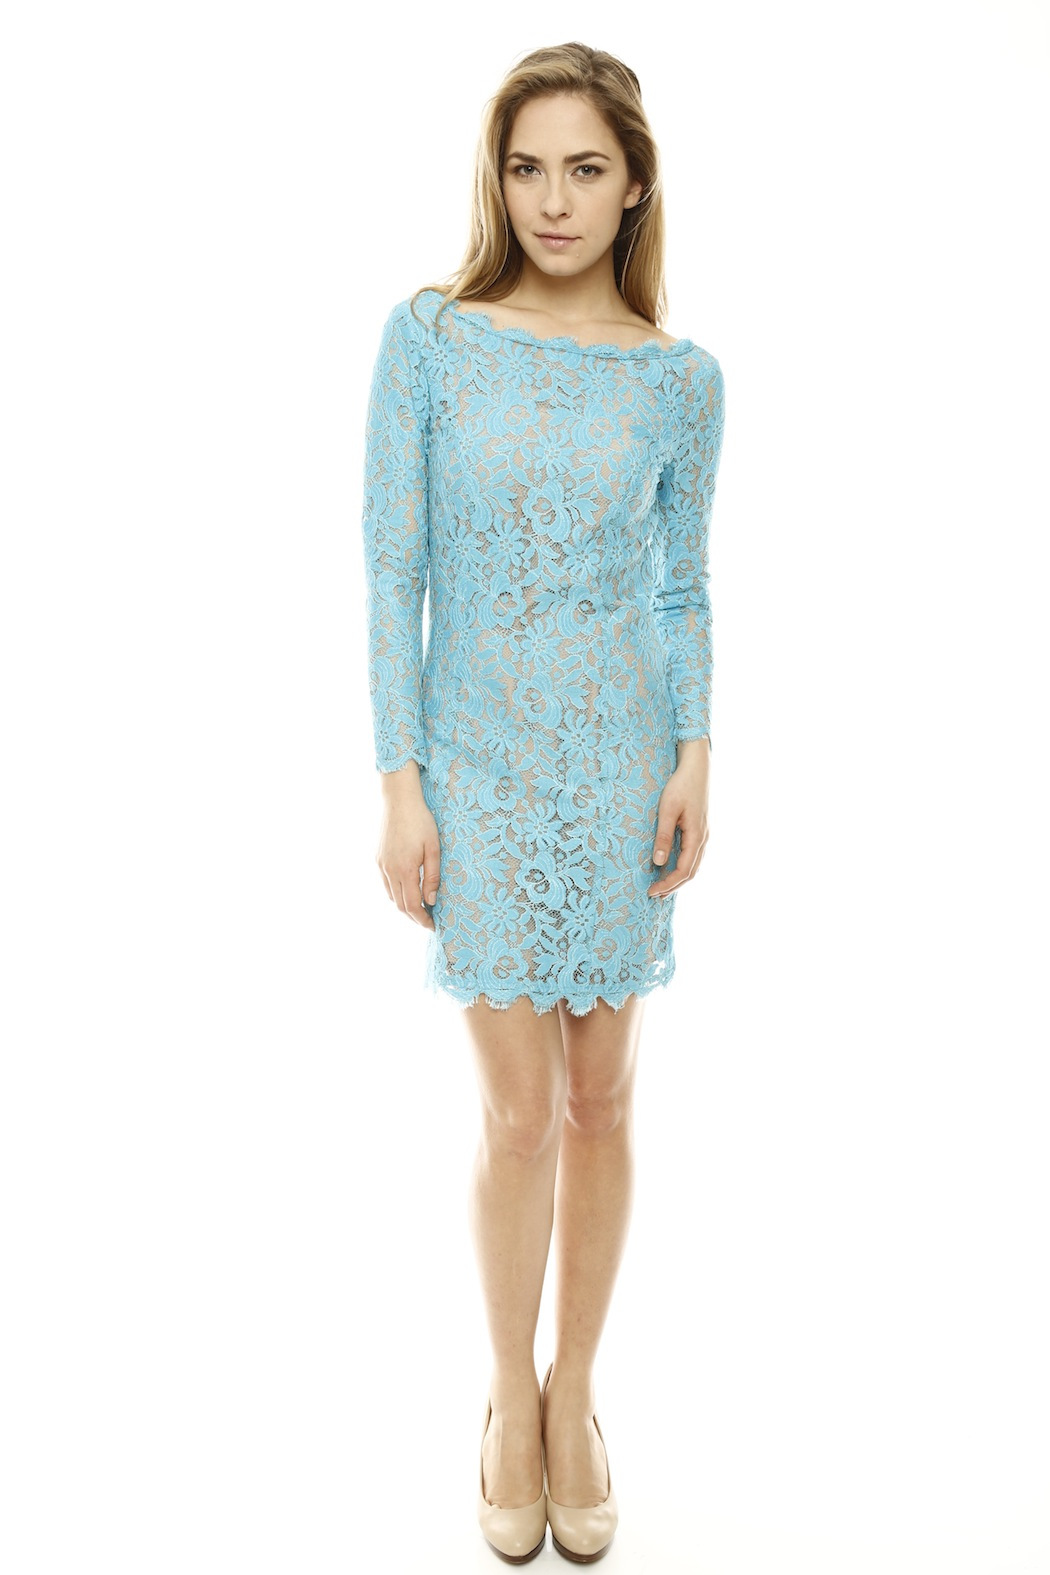 Madison Marcus Lace Sheath Dress from Georgetown by Urban Chic ...